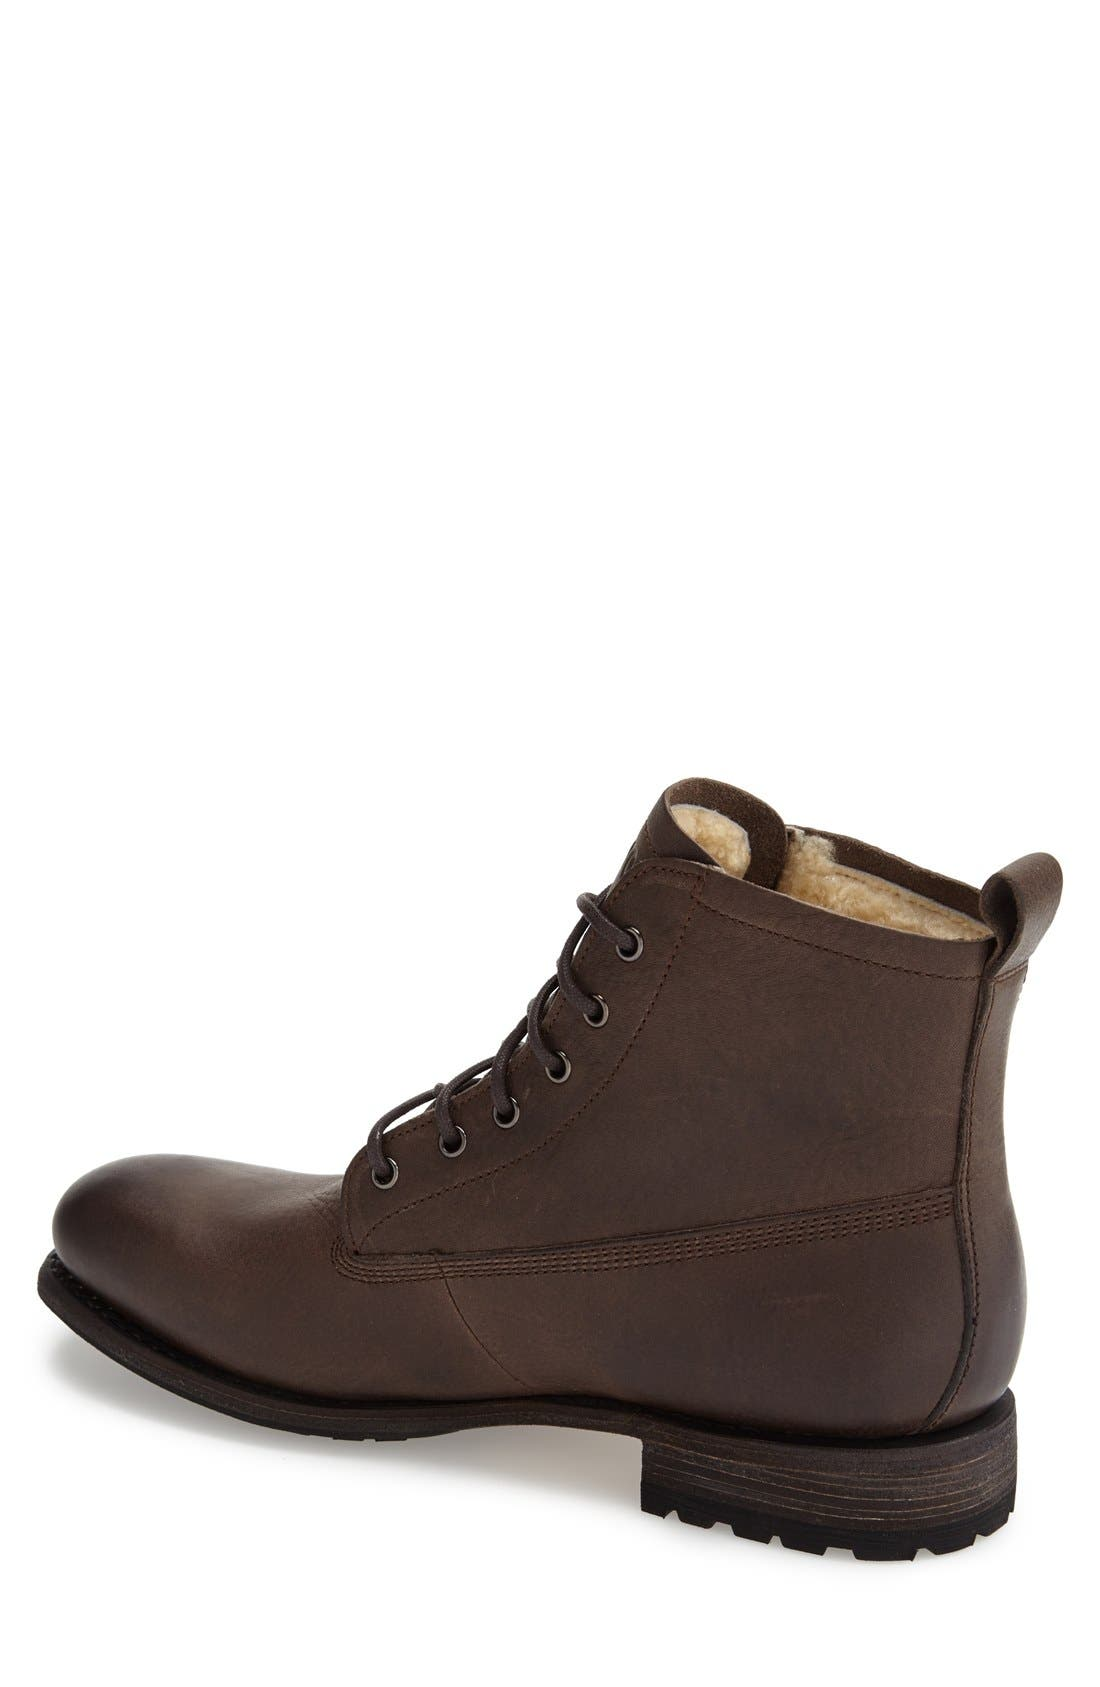 Alternate Image 2  - Blackstone 'Gull' Plain Toe Boot (Men)